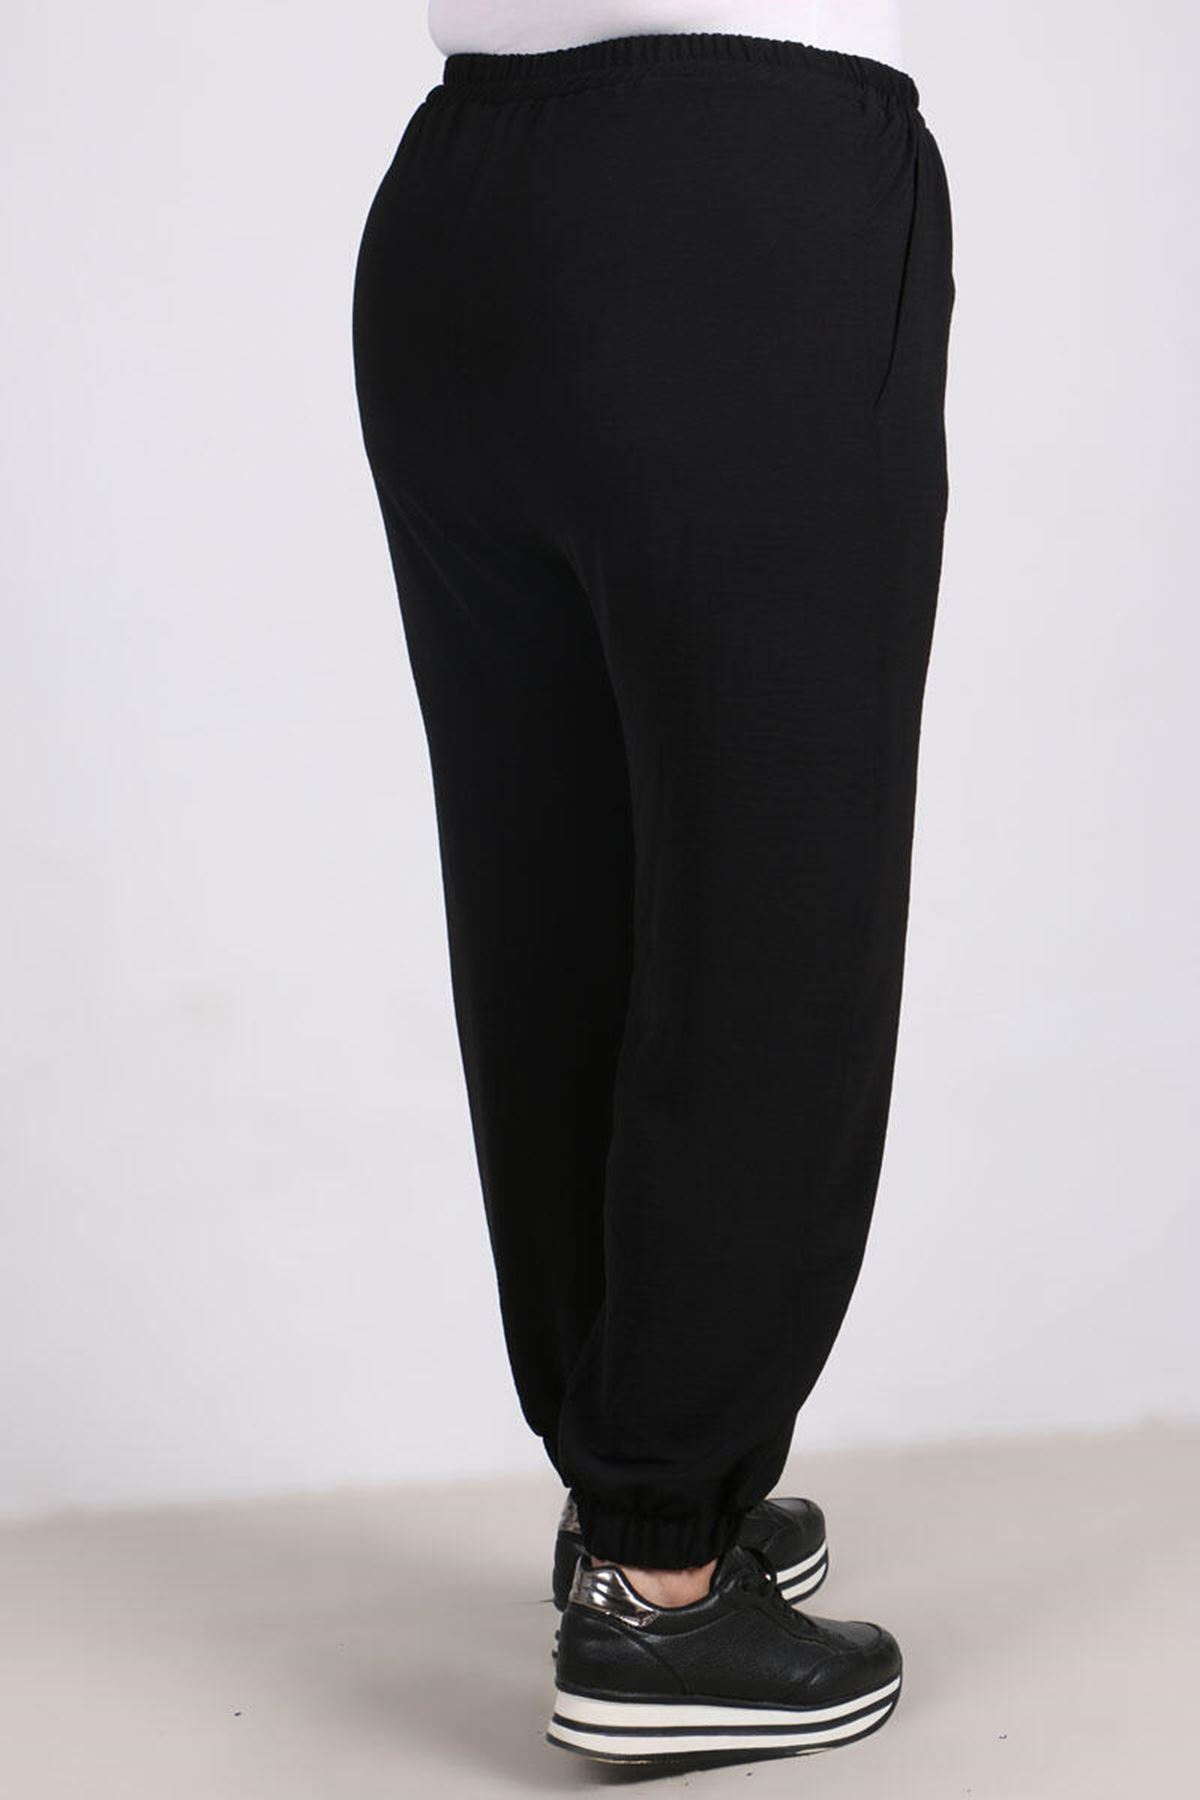 9113 Plus Size Pants with Elastic Waist and Trotters - Black